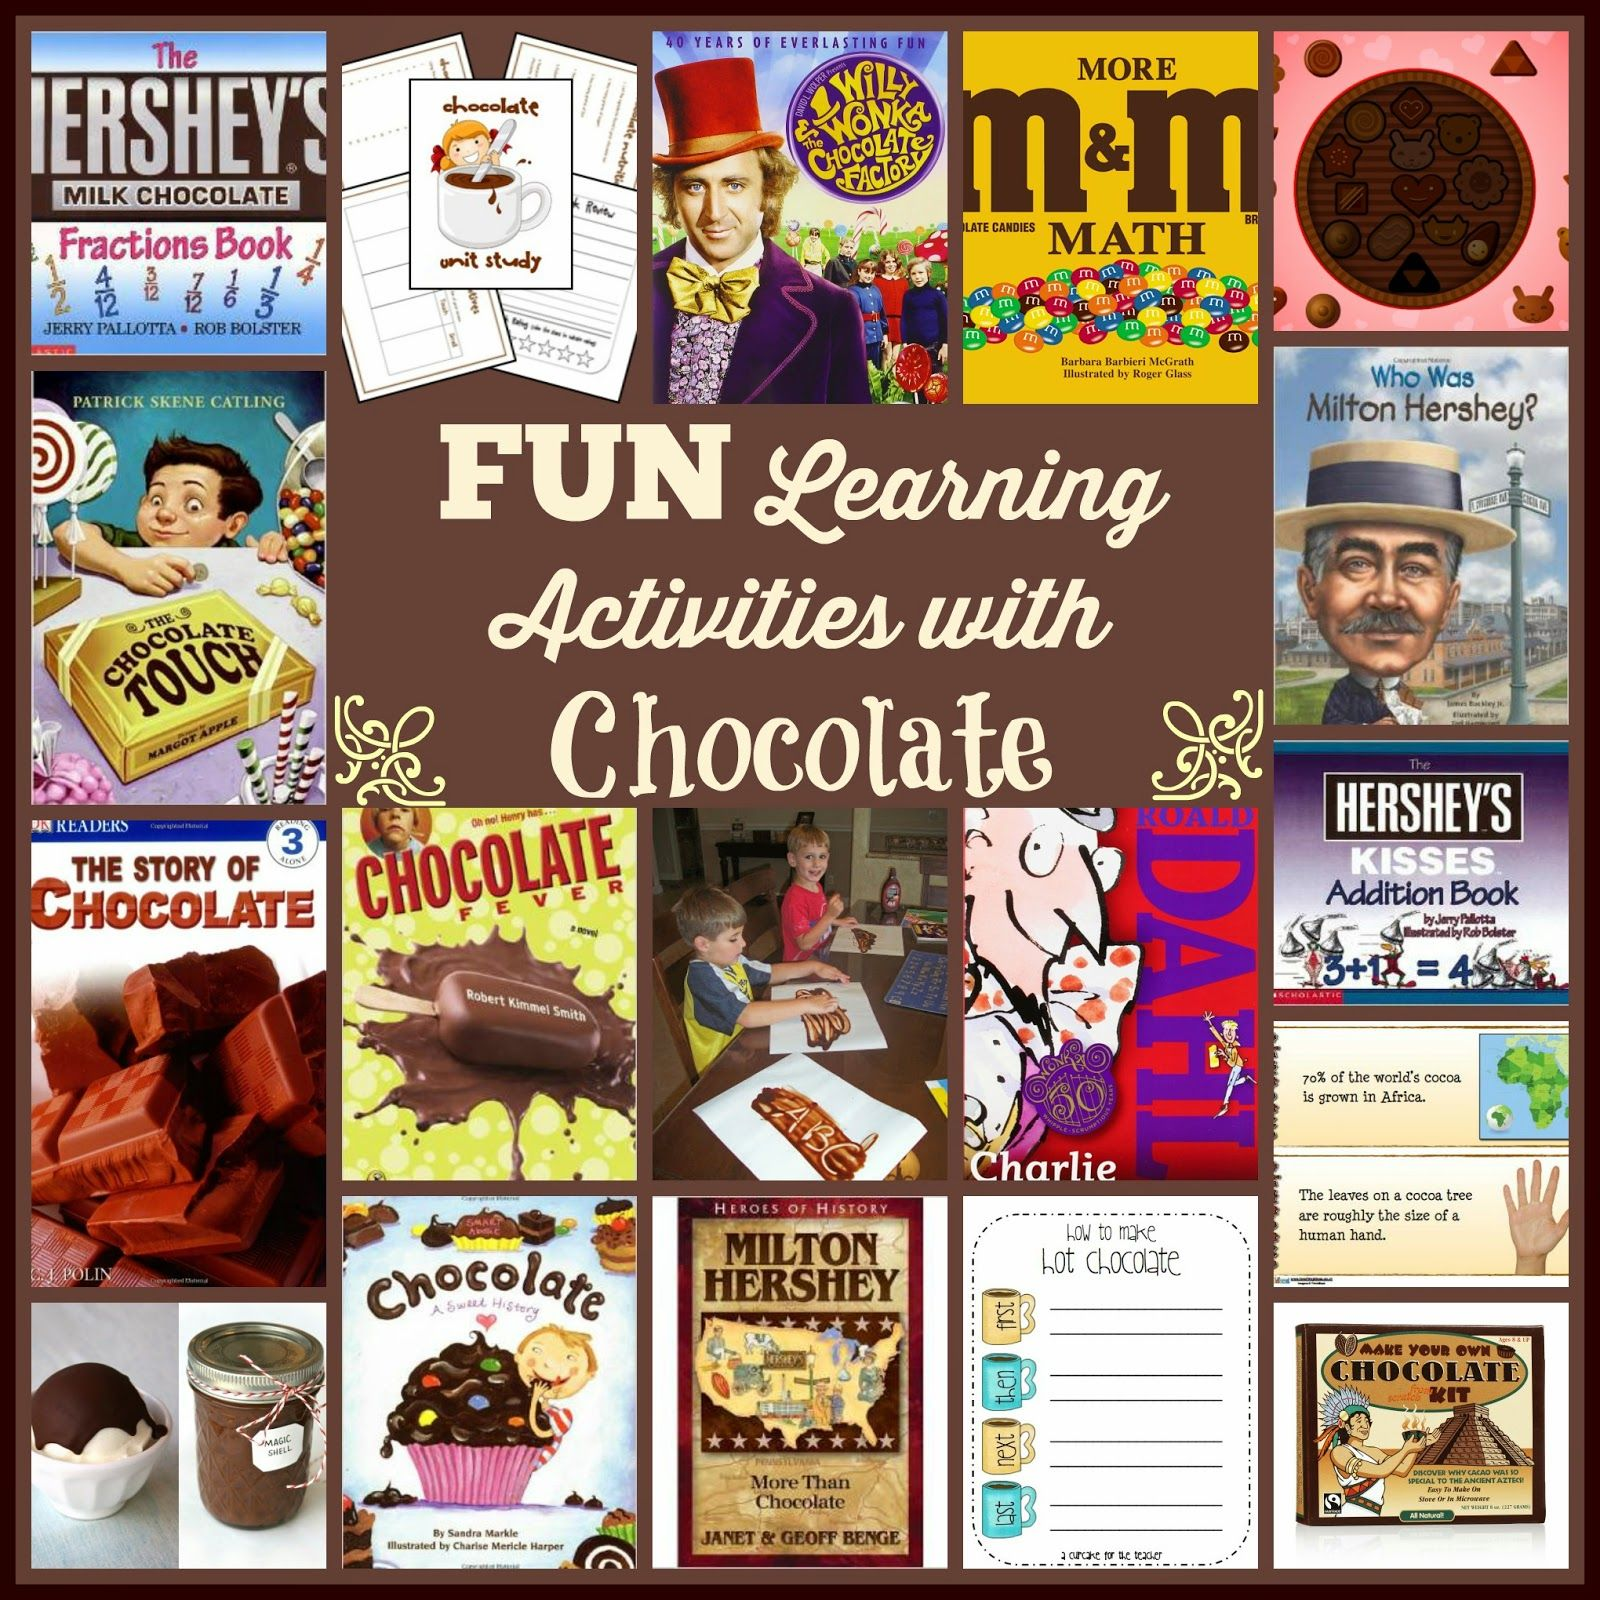 Fun Learning Activities With Chocolate